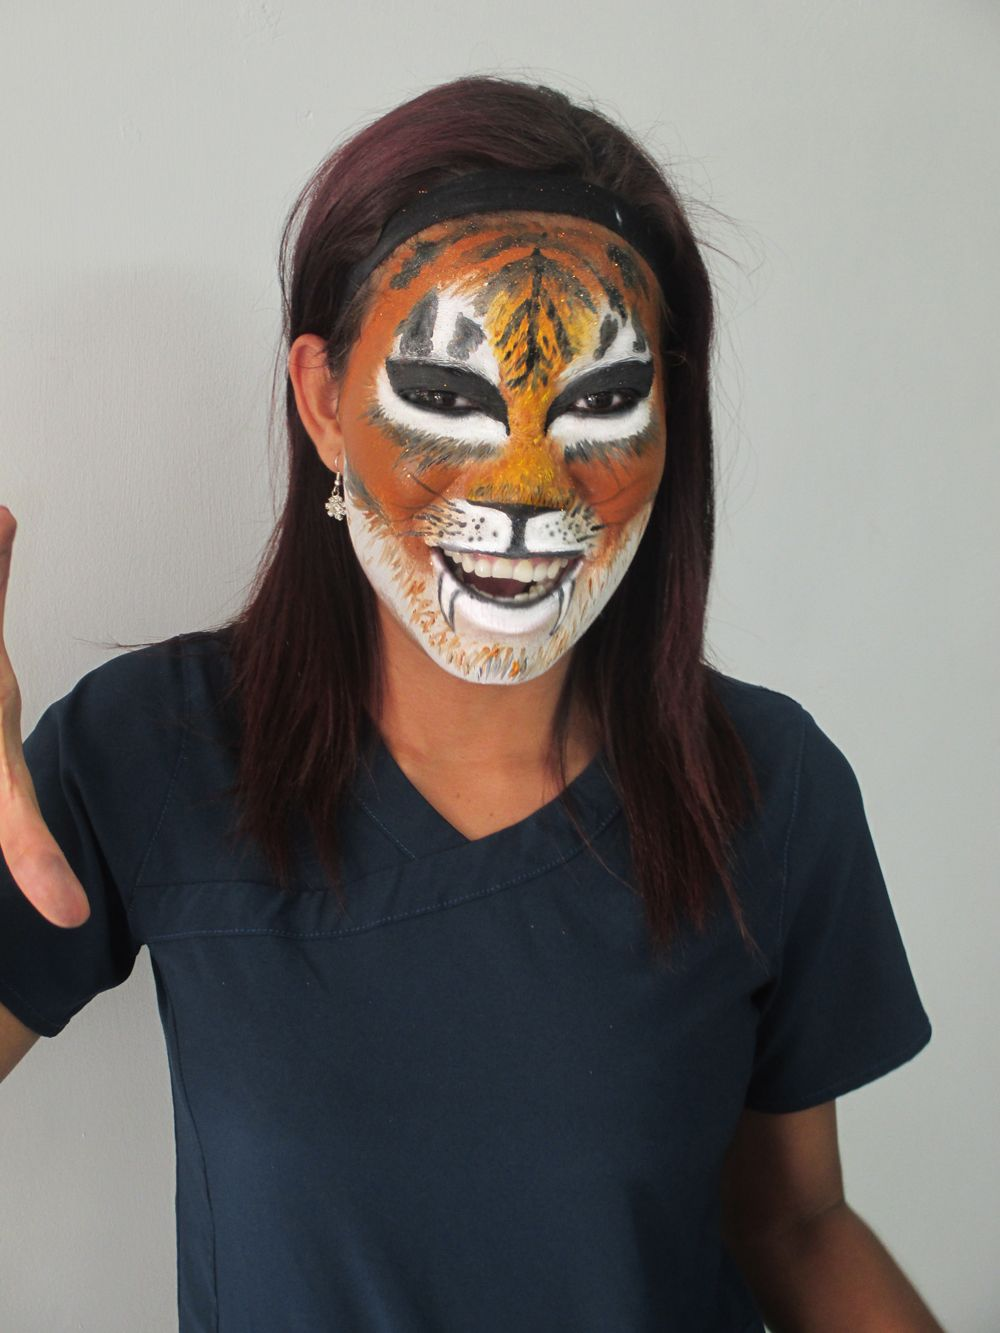 Tigerhttp://www.occasionsbyelena.com/Portfolio-other-events.php